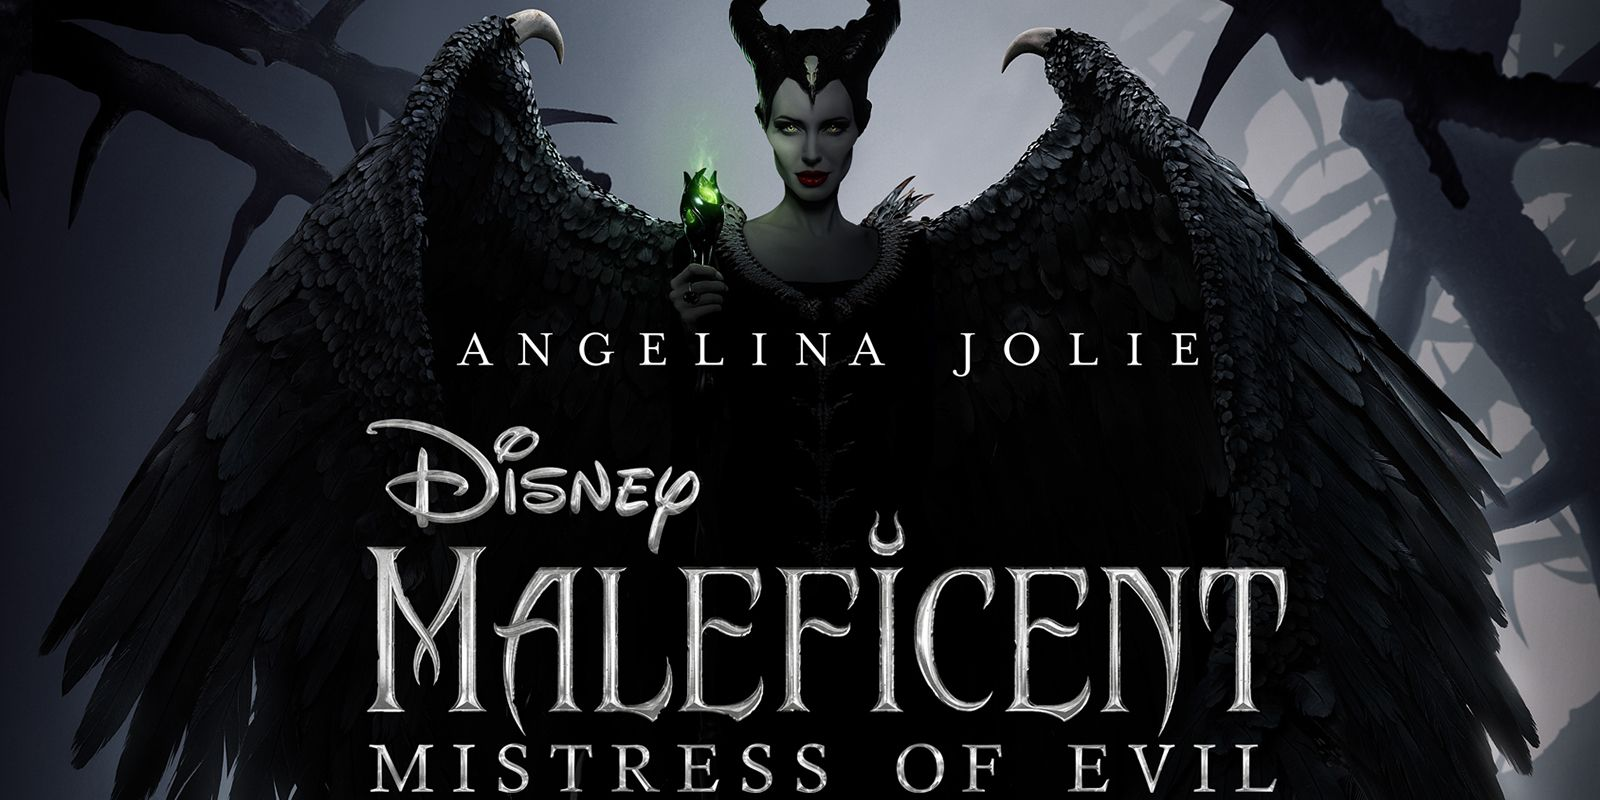 Maleficent Mistress Of Evil Poster Announces Start Of